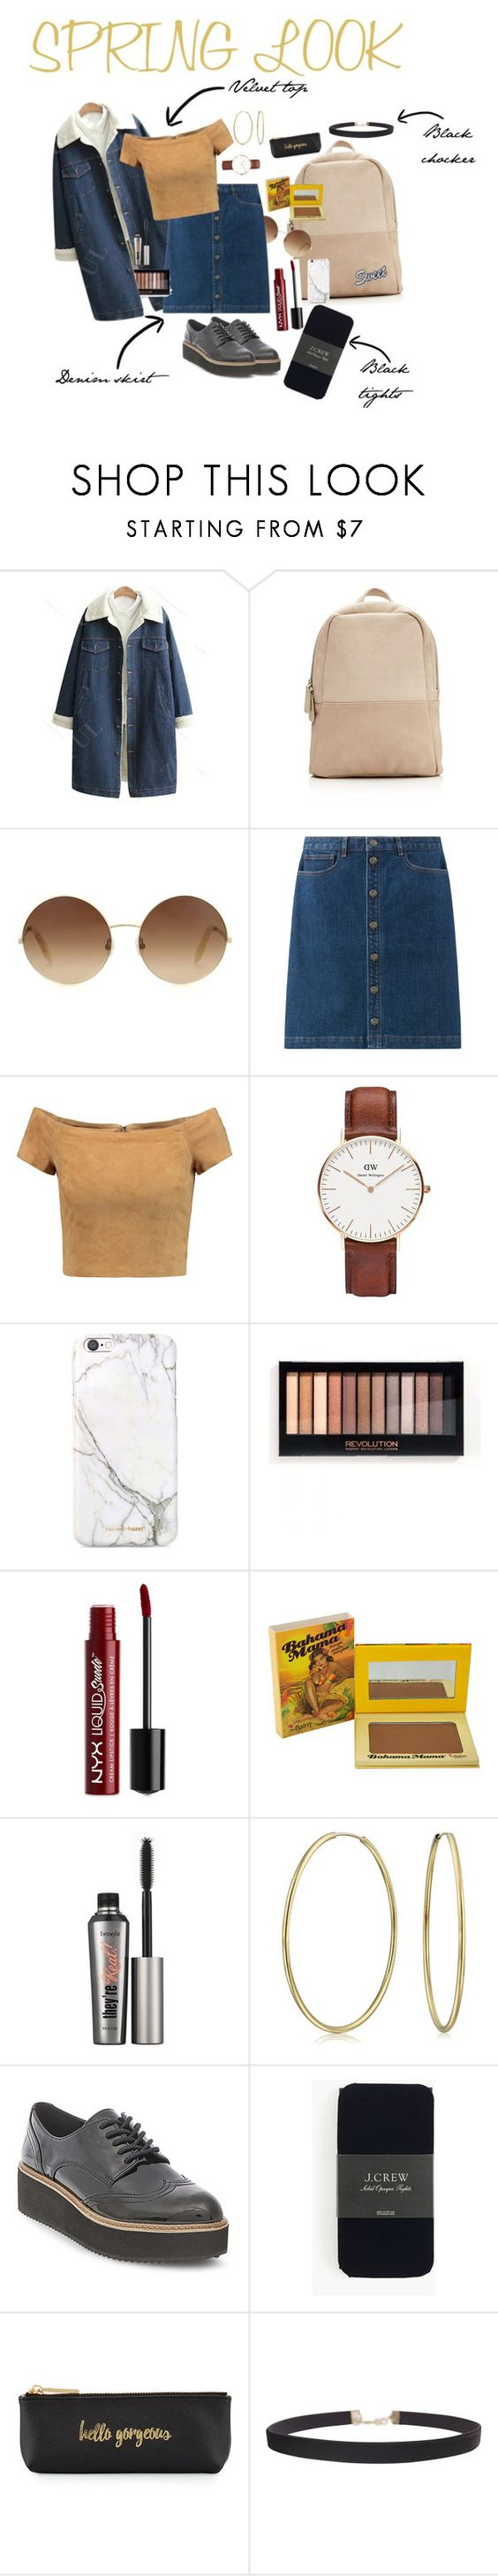 """Spring"" by marinacr03 ❤ liked on Polyvore featuring Victoria Beckham, Alice + Olivia, Daniel Wellington, russell+hazel, NYX, TheBalm, Benefit, Bling Jewelry, Orelia and Steve Madden"